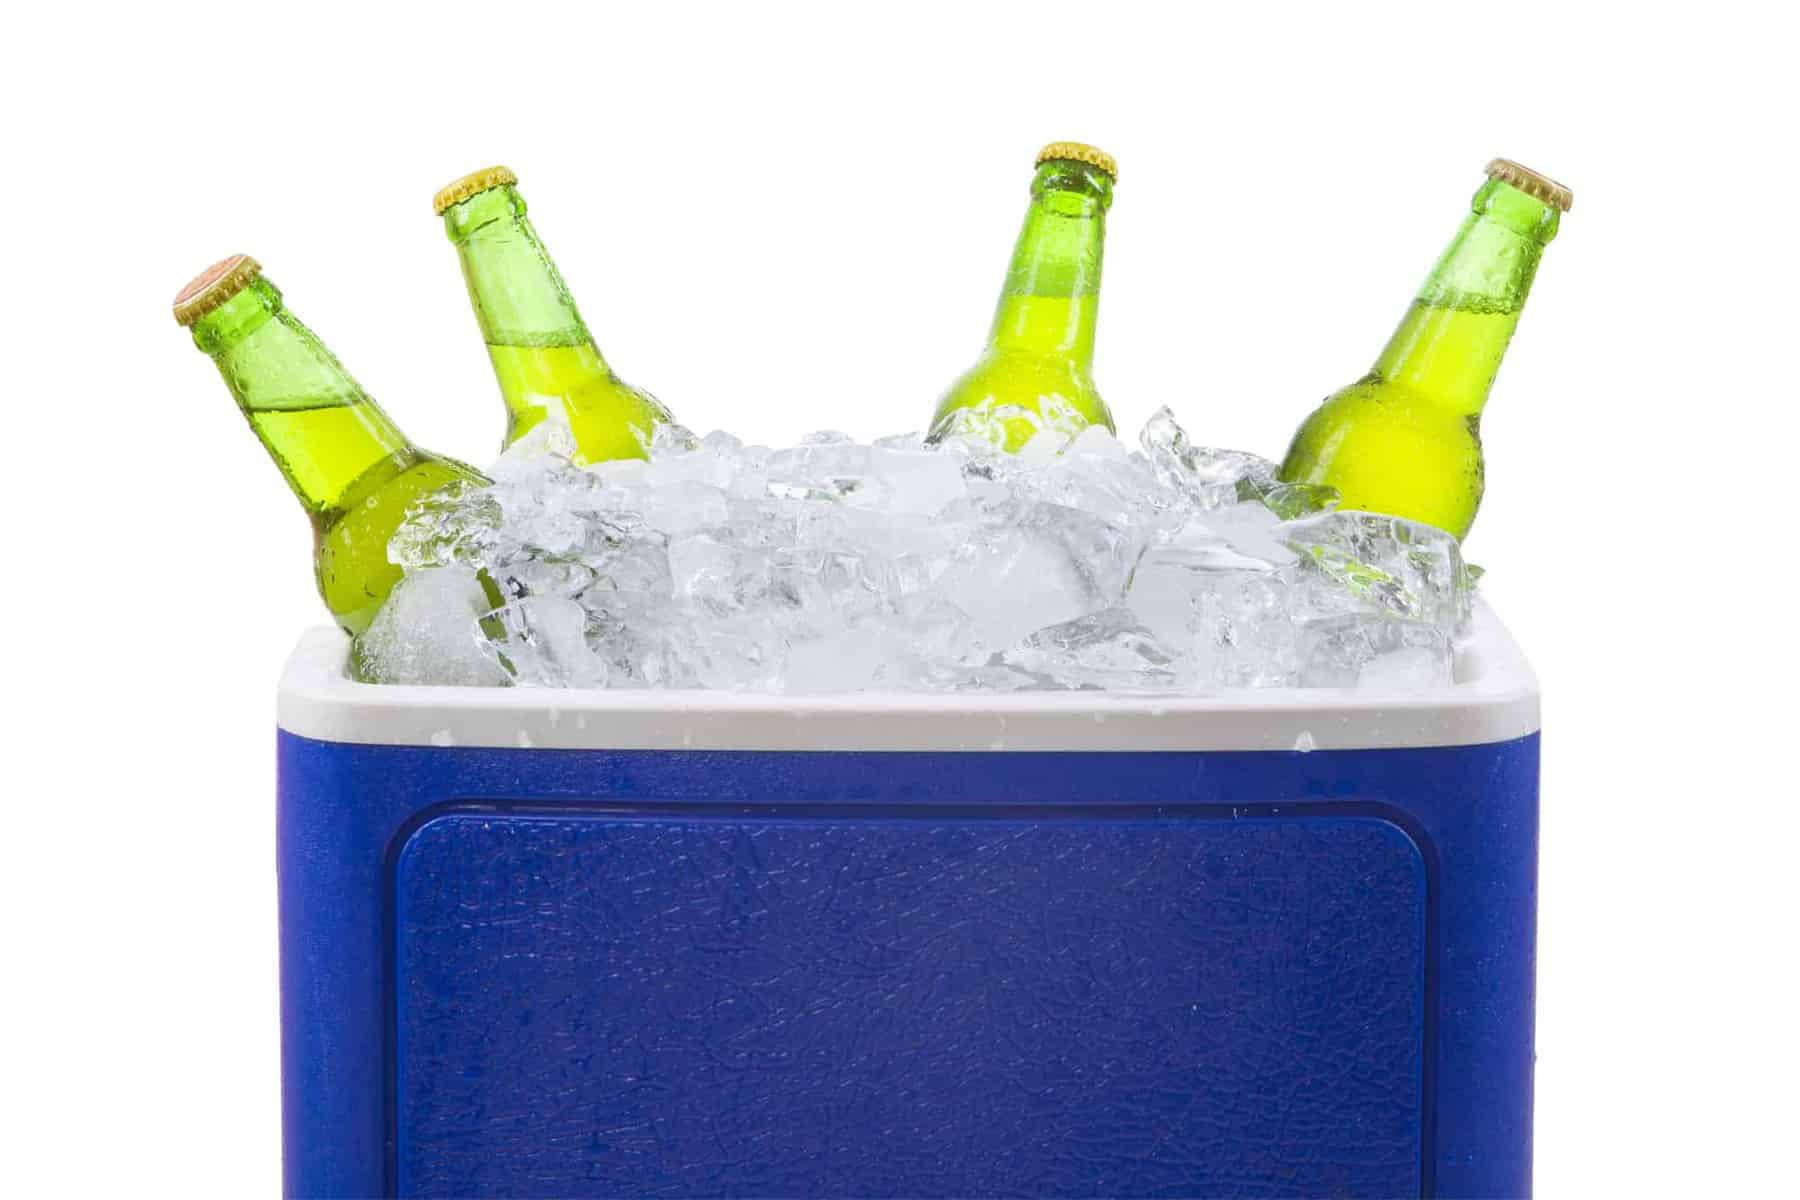 Cooler full of Ice with beer